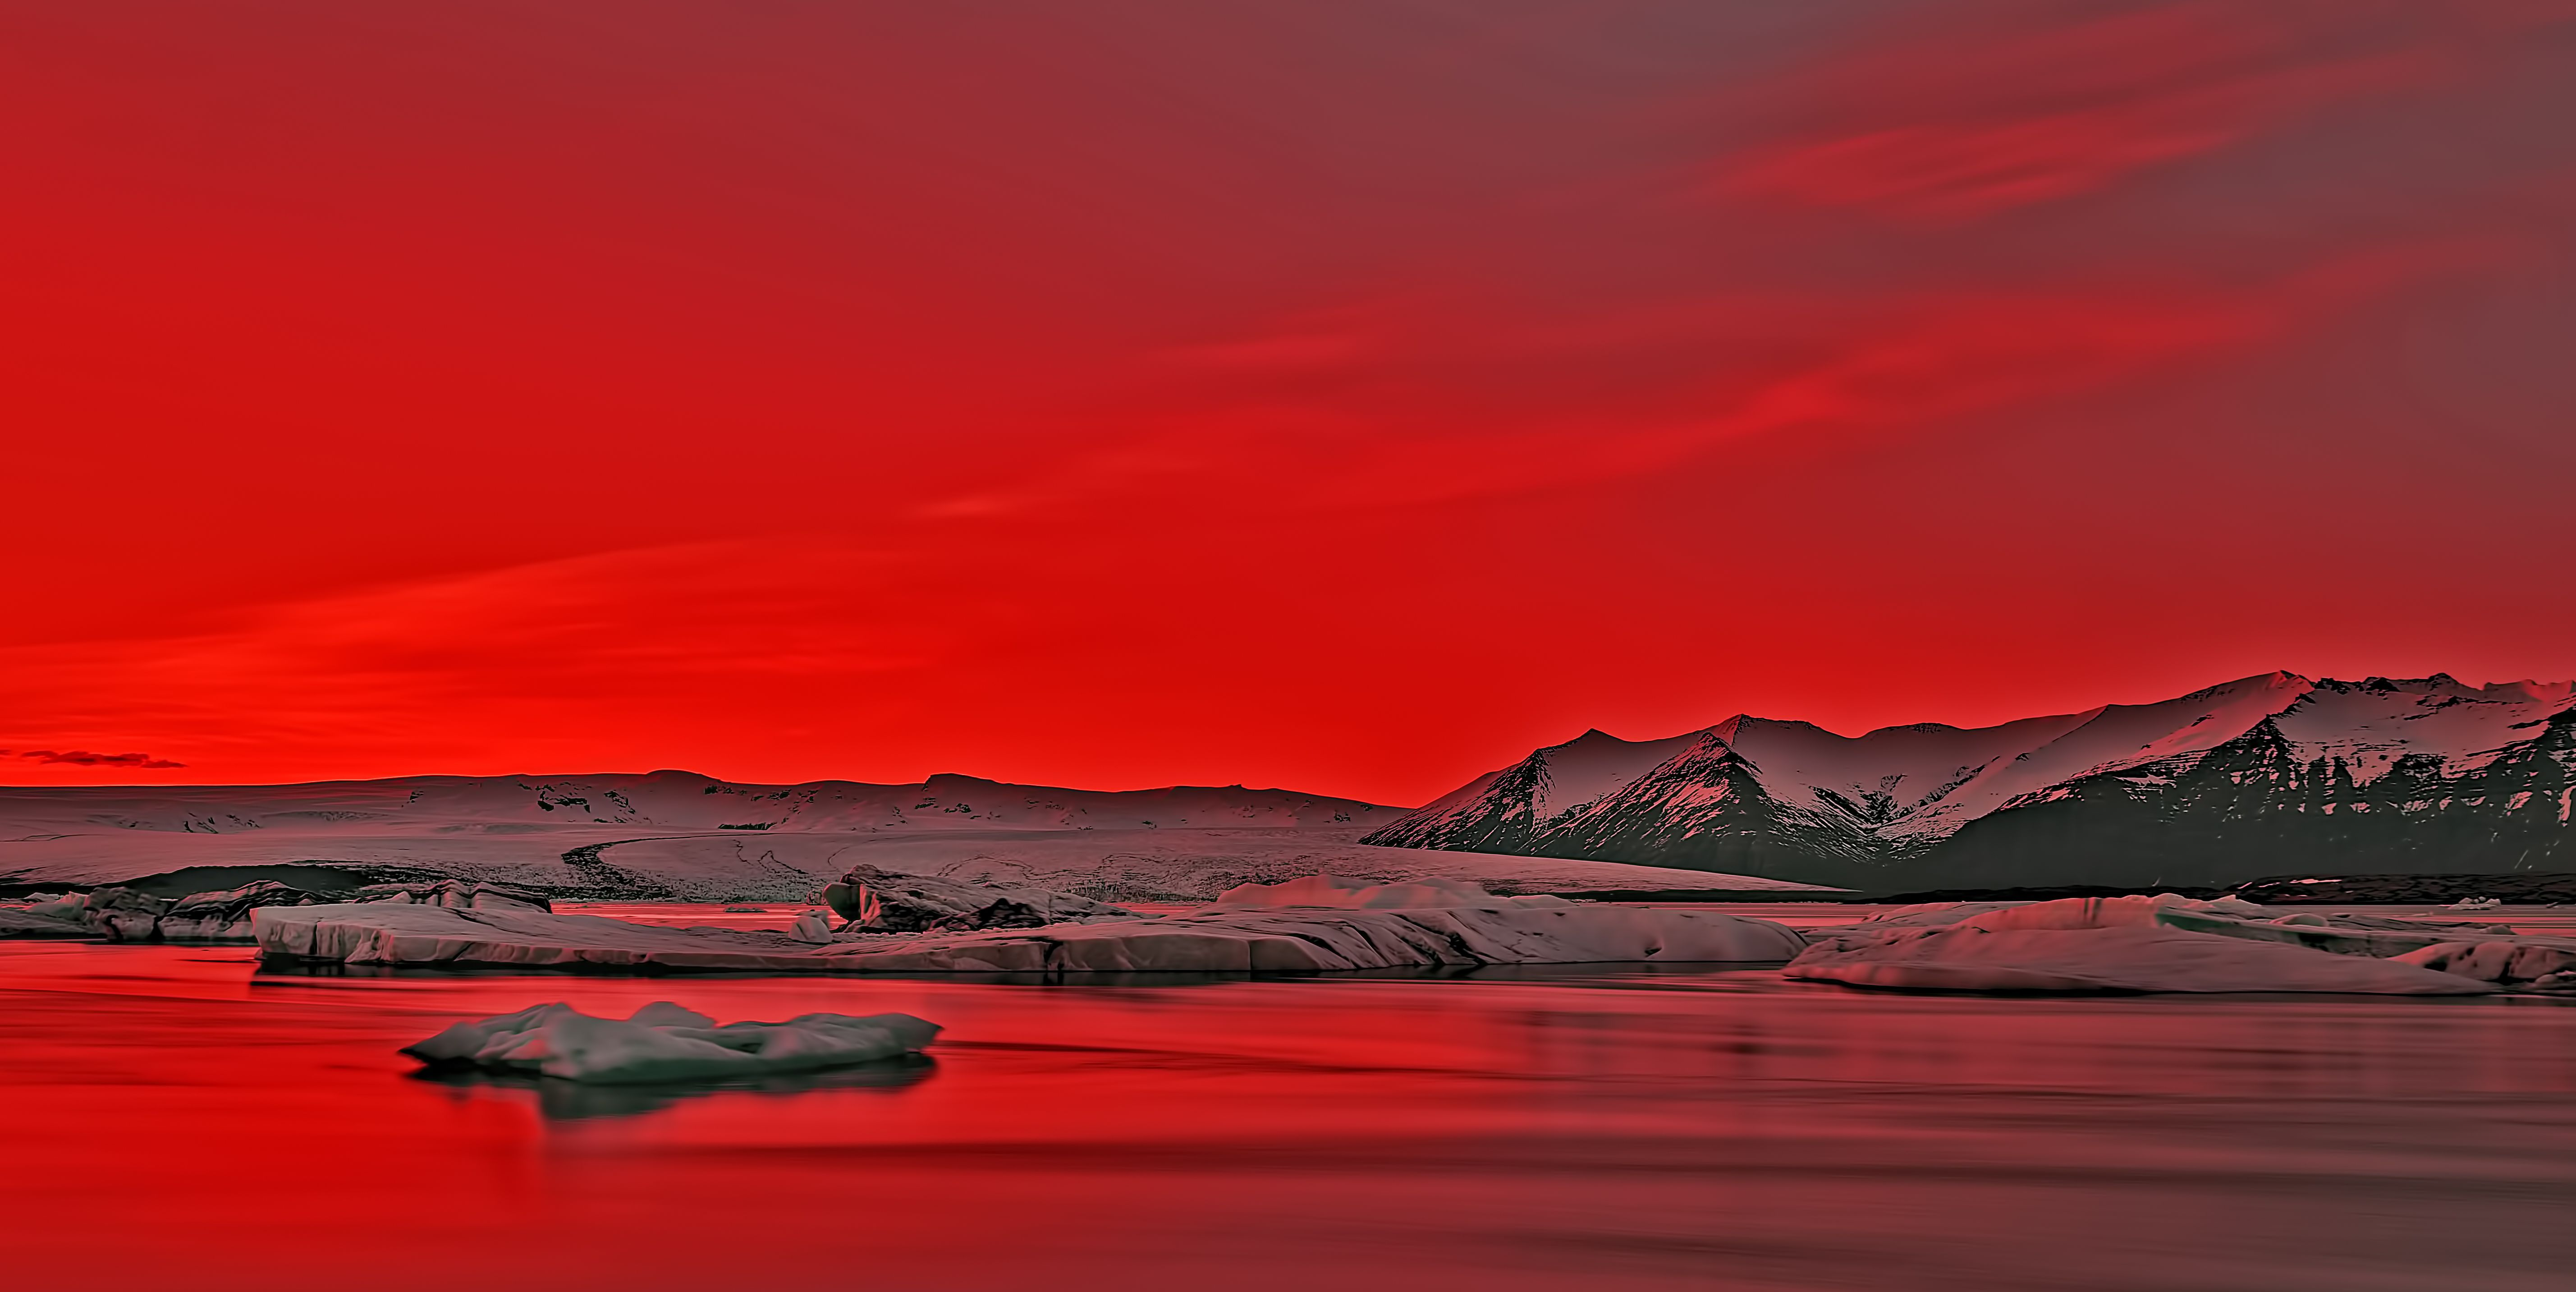 Vibrant Red Sunset Over Icebergs in Jokulsarlon Glacier Lagoon, Iceland